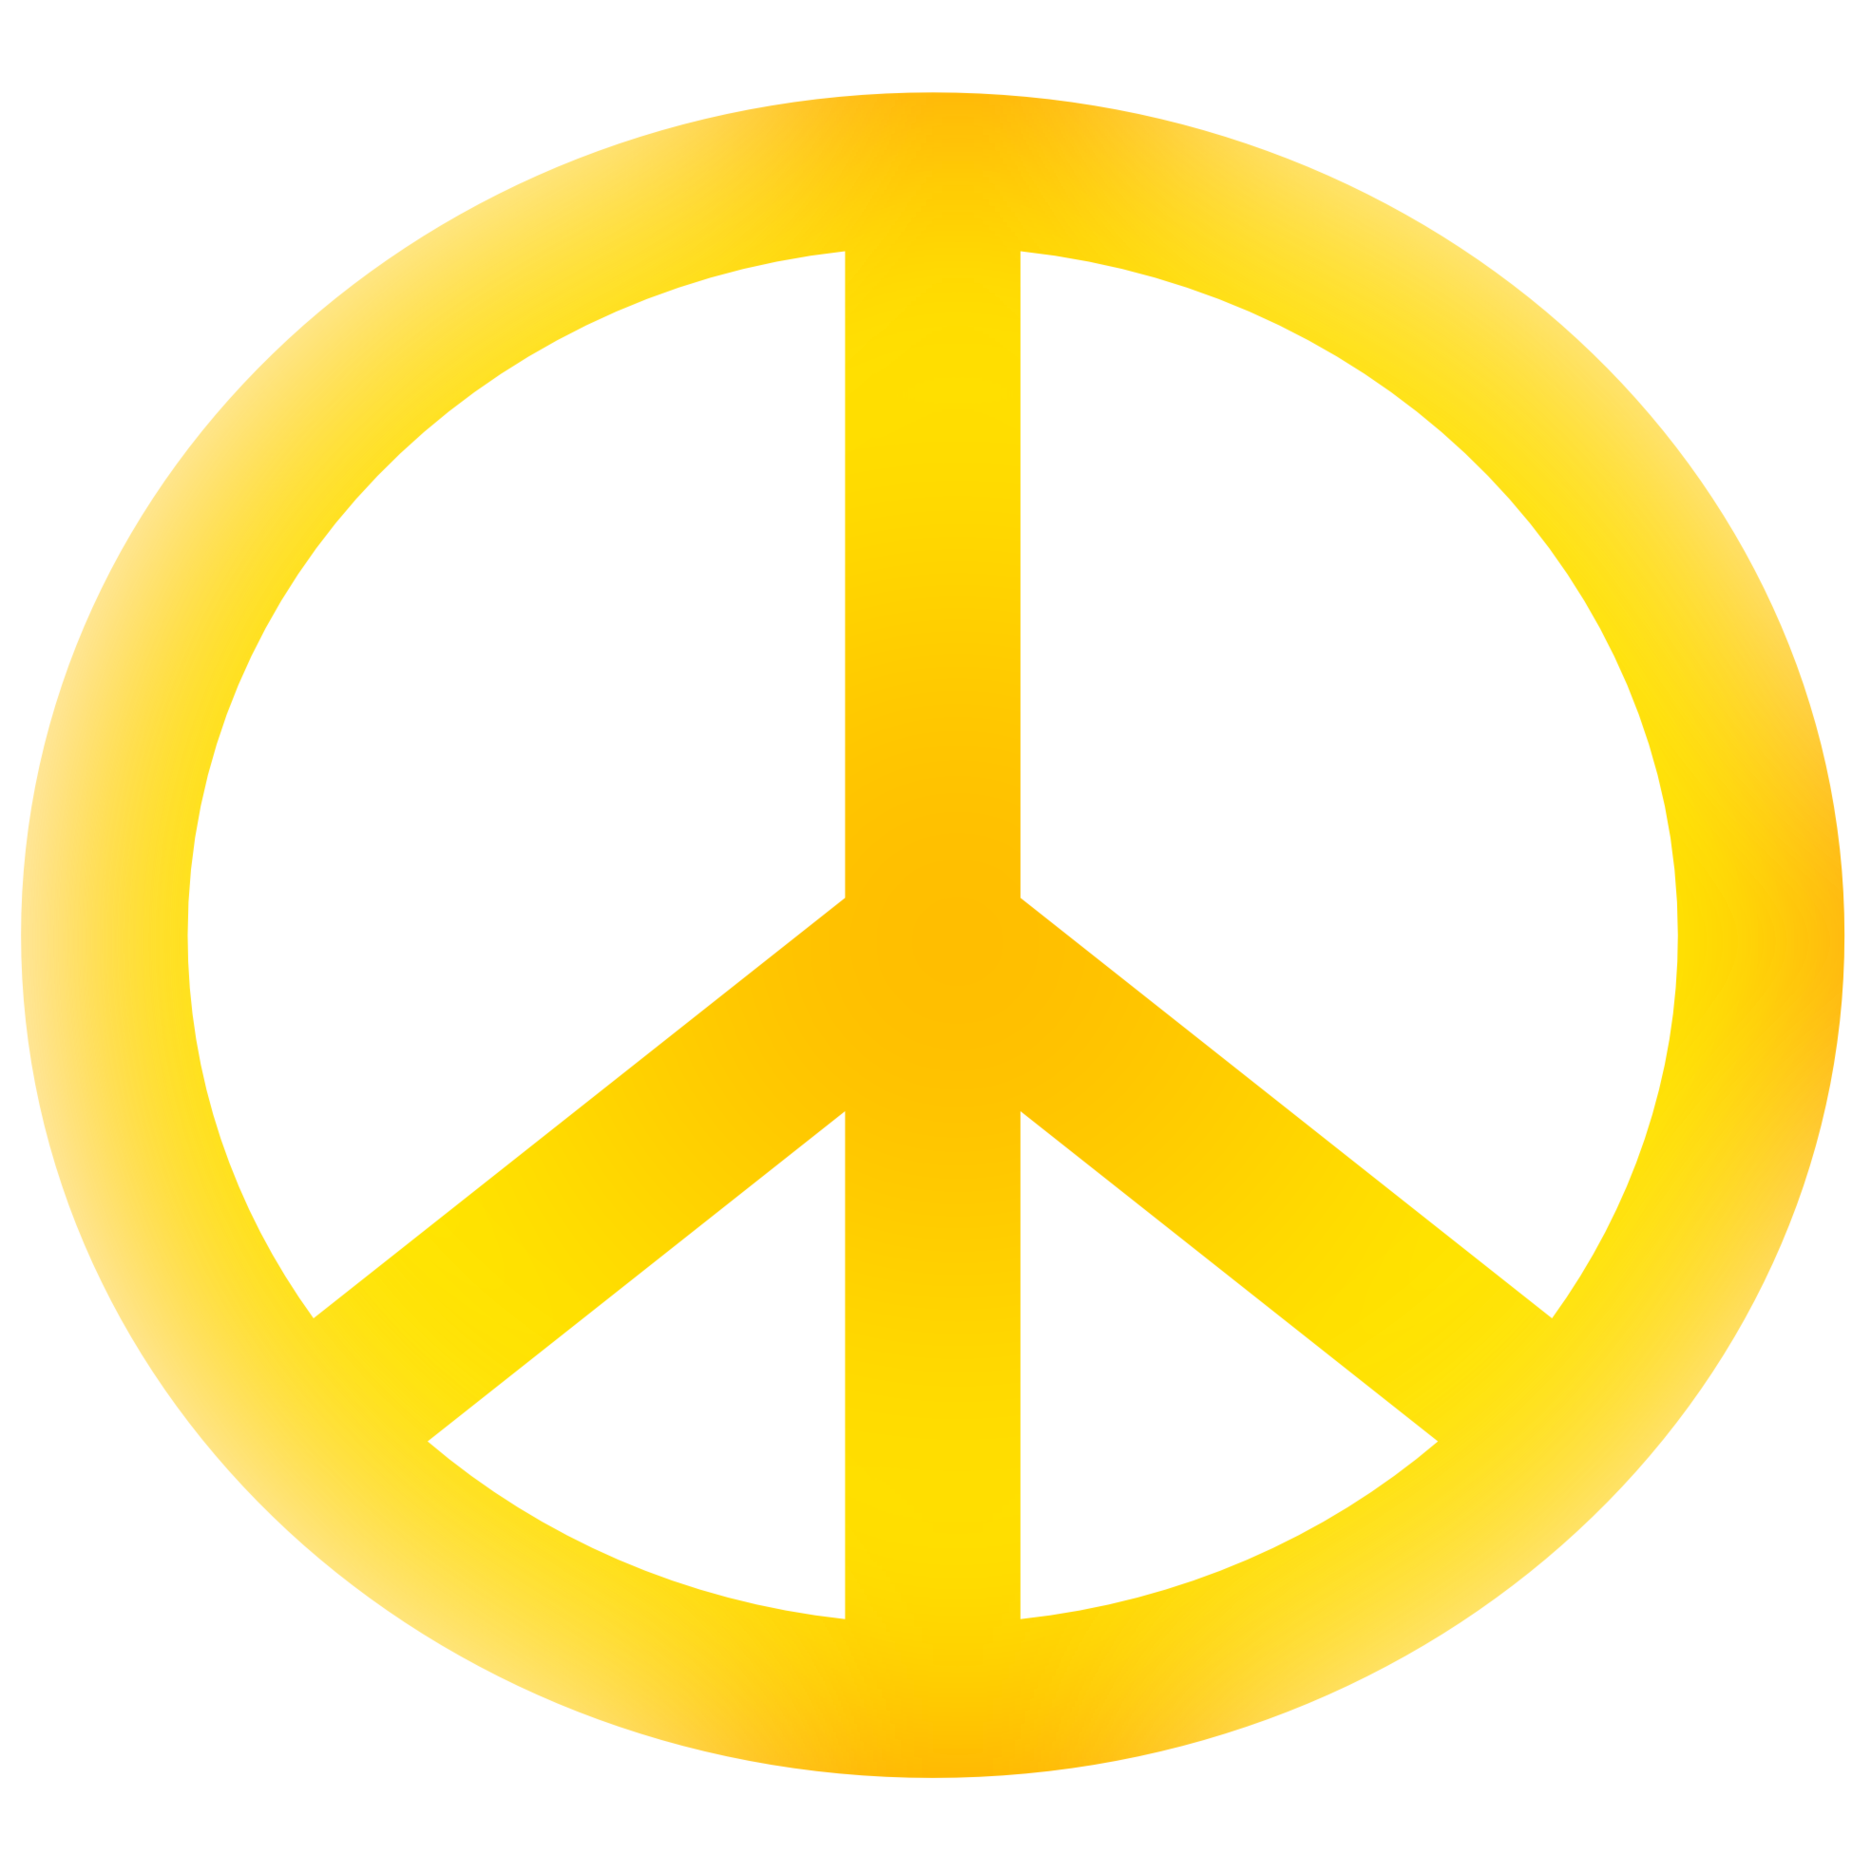 Peace Sign clipart border Use resource sign Clipartix Peace